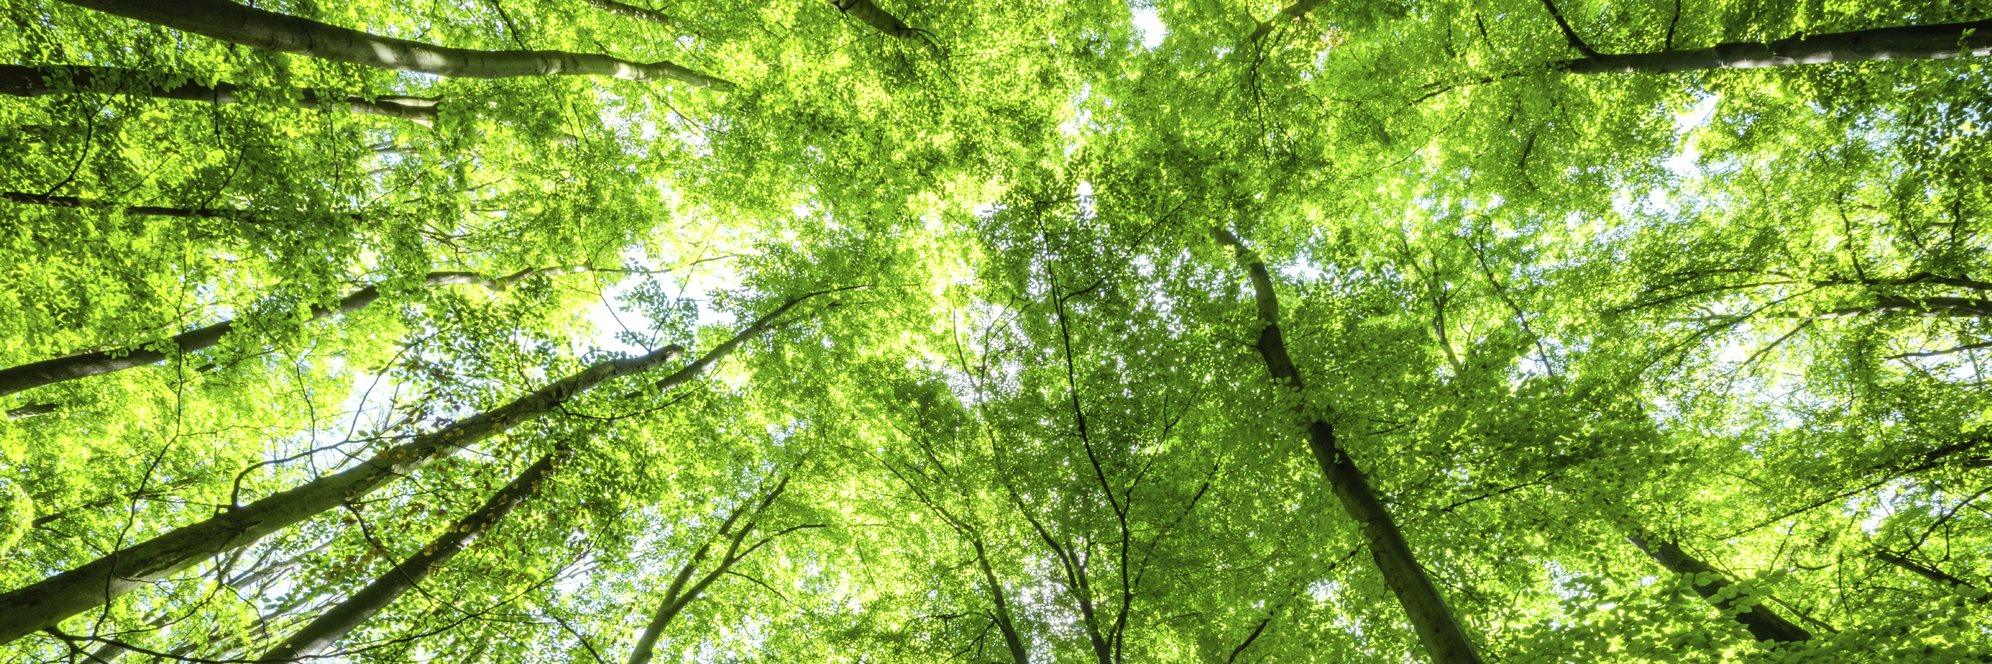 Sunlight_In_A_Beech_Tree_Forest.jpg